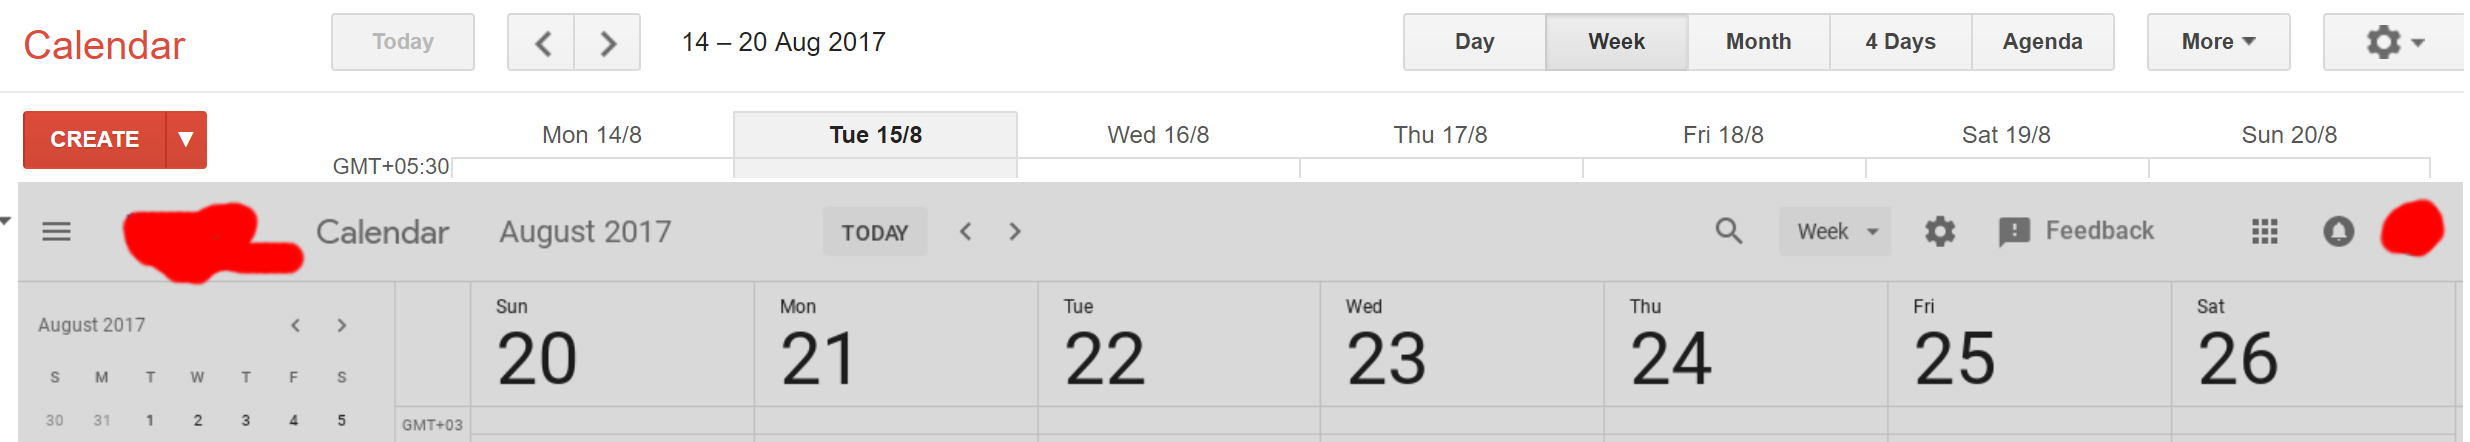 Whats New On Calendar >> Revamped Google Calendar Ui For Desktop Spotted In Leaks